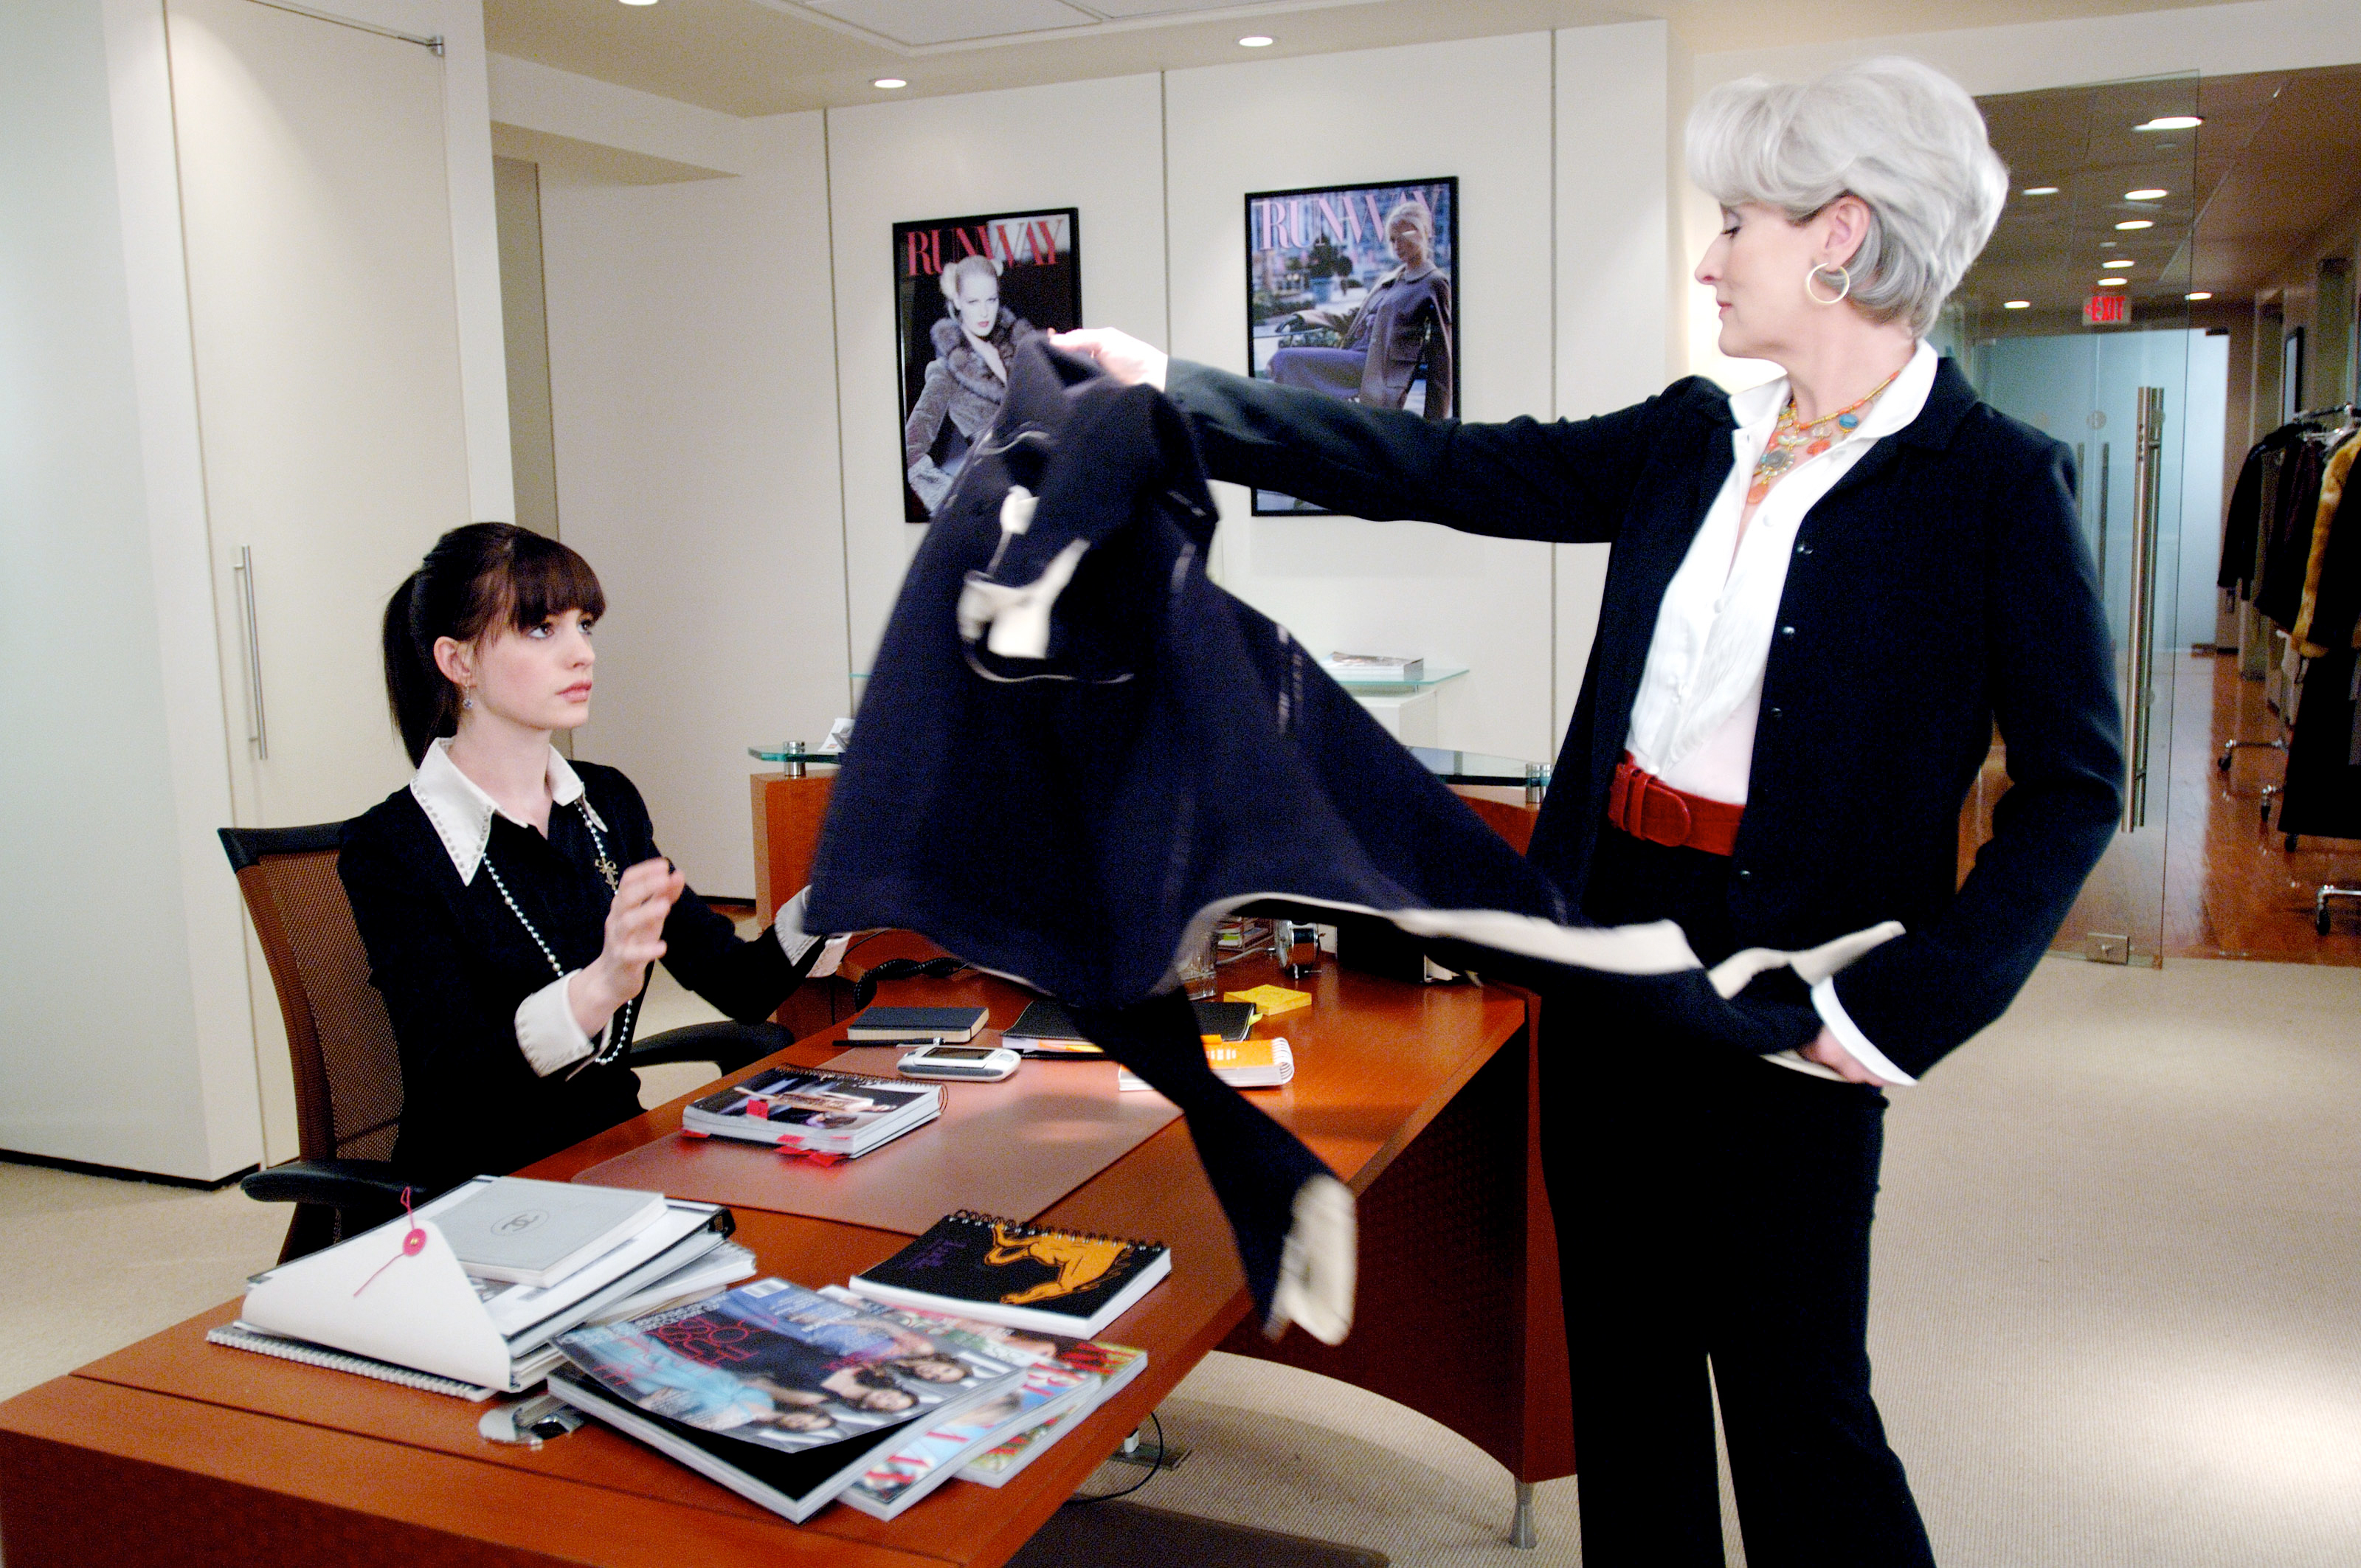 THE DEVIL WEARS PRADA, Anne Hathaway, Meryl Streep, 2006.